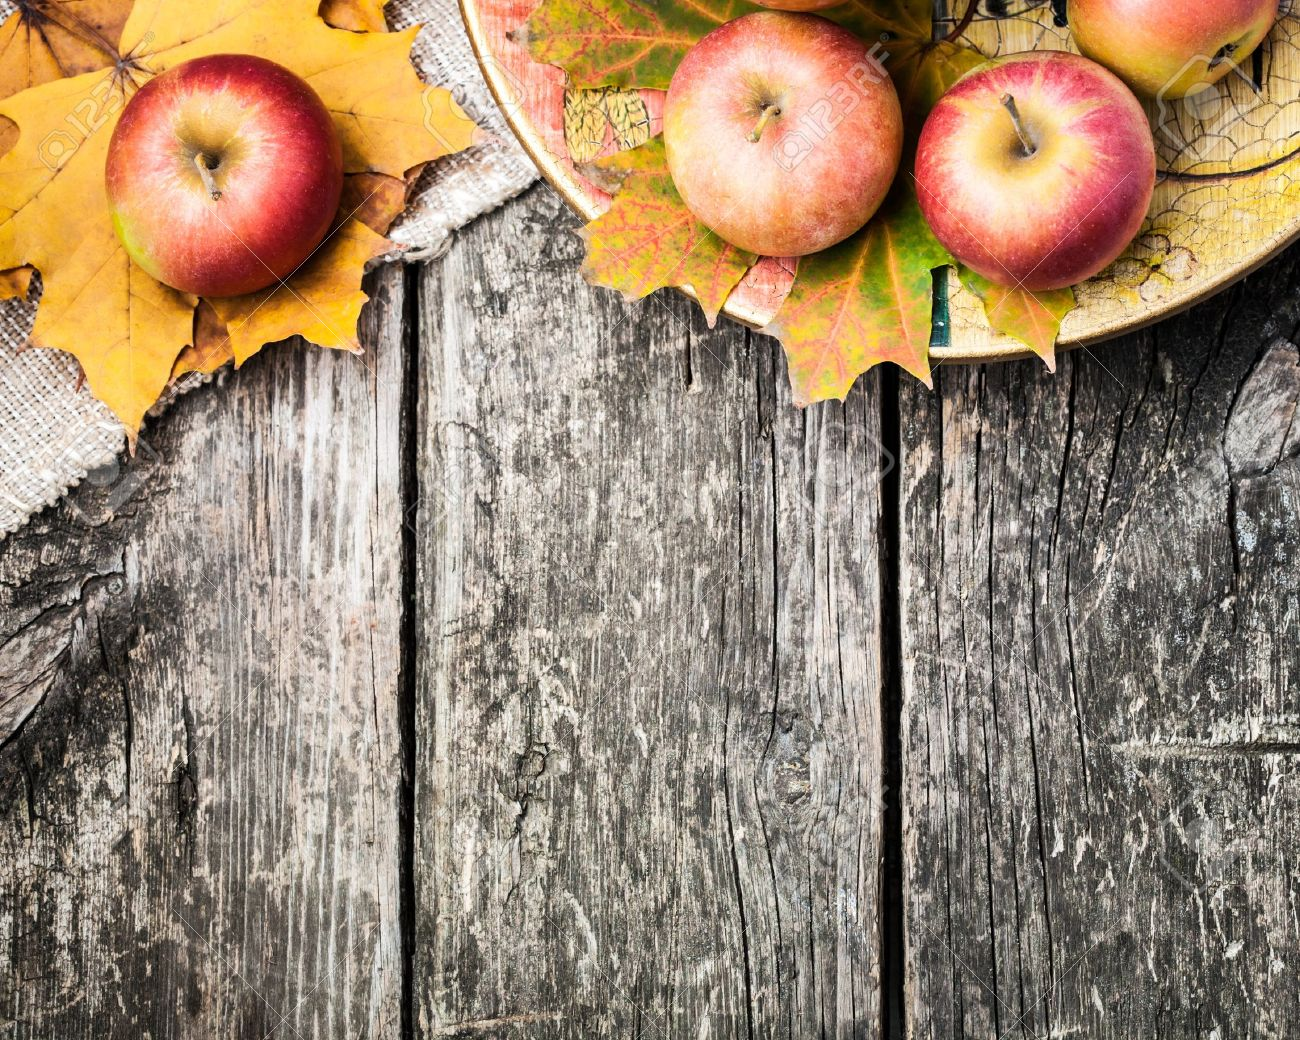 13881900-Autumn-border-from-apples-and-fallen-leaves-on-old-wooden-table-Thanksgiving-day-concept-Stock-Photo